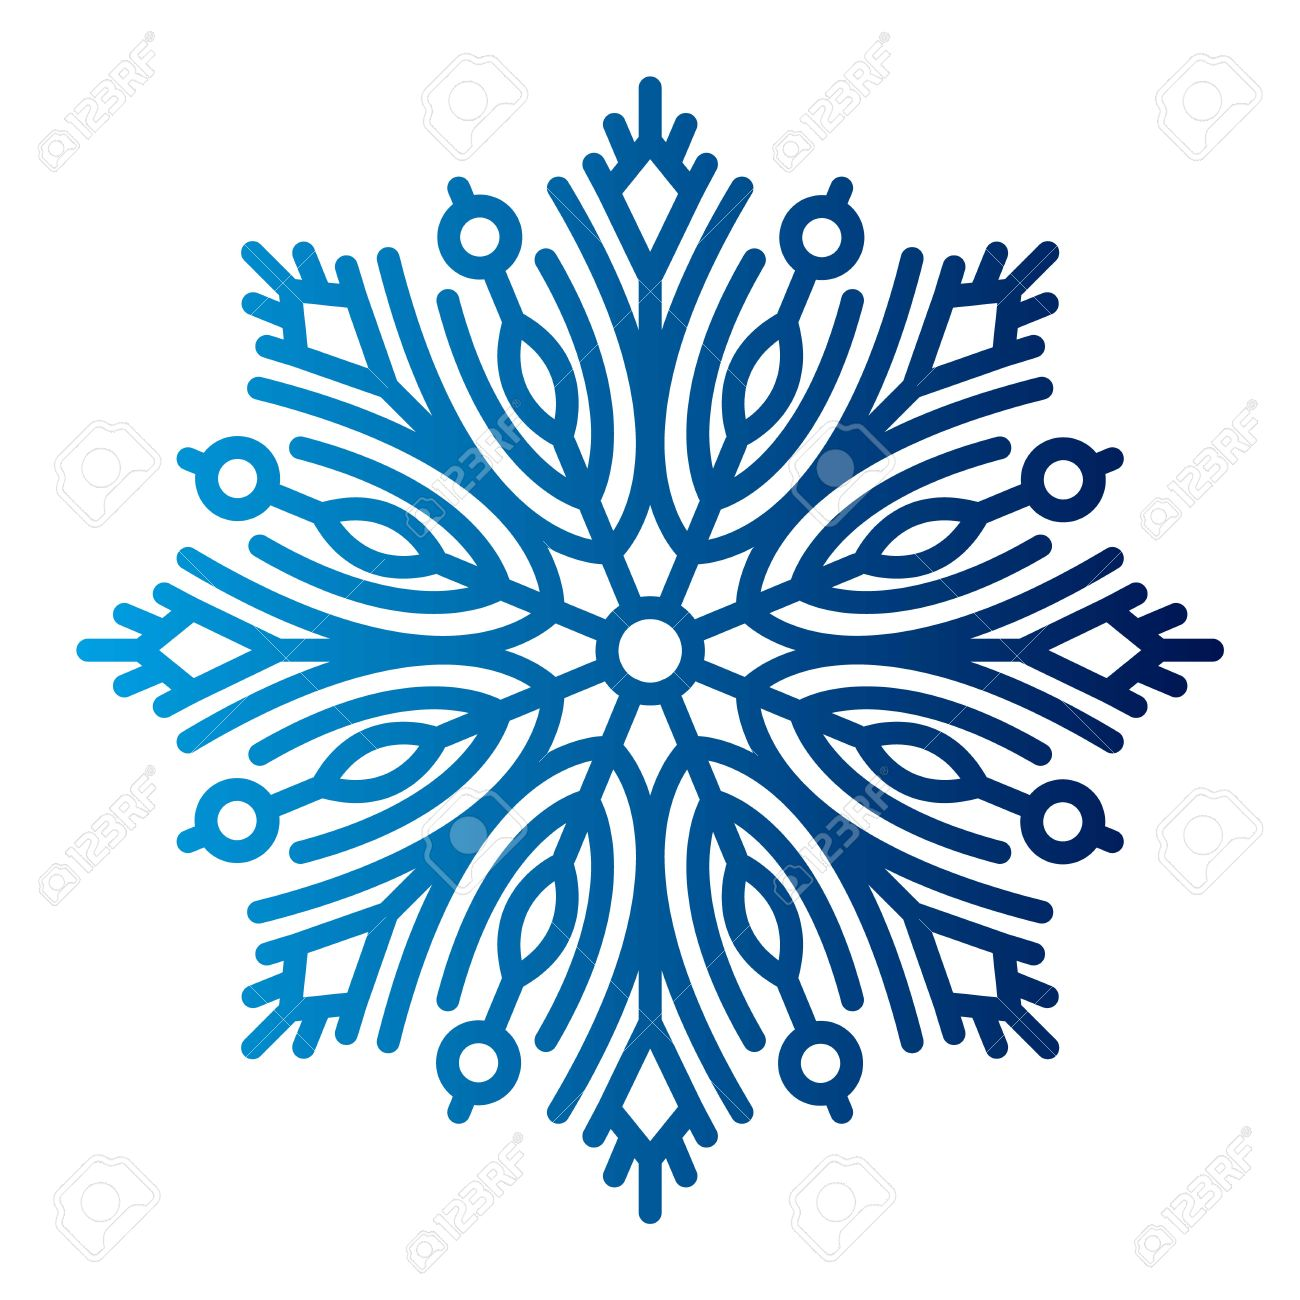 snowflake vector illustration and season nature winter sign symbol rh 123rf com vector snowflake patterns vector snowflake transparent background